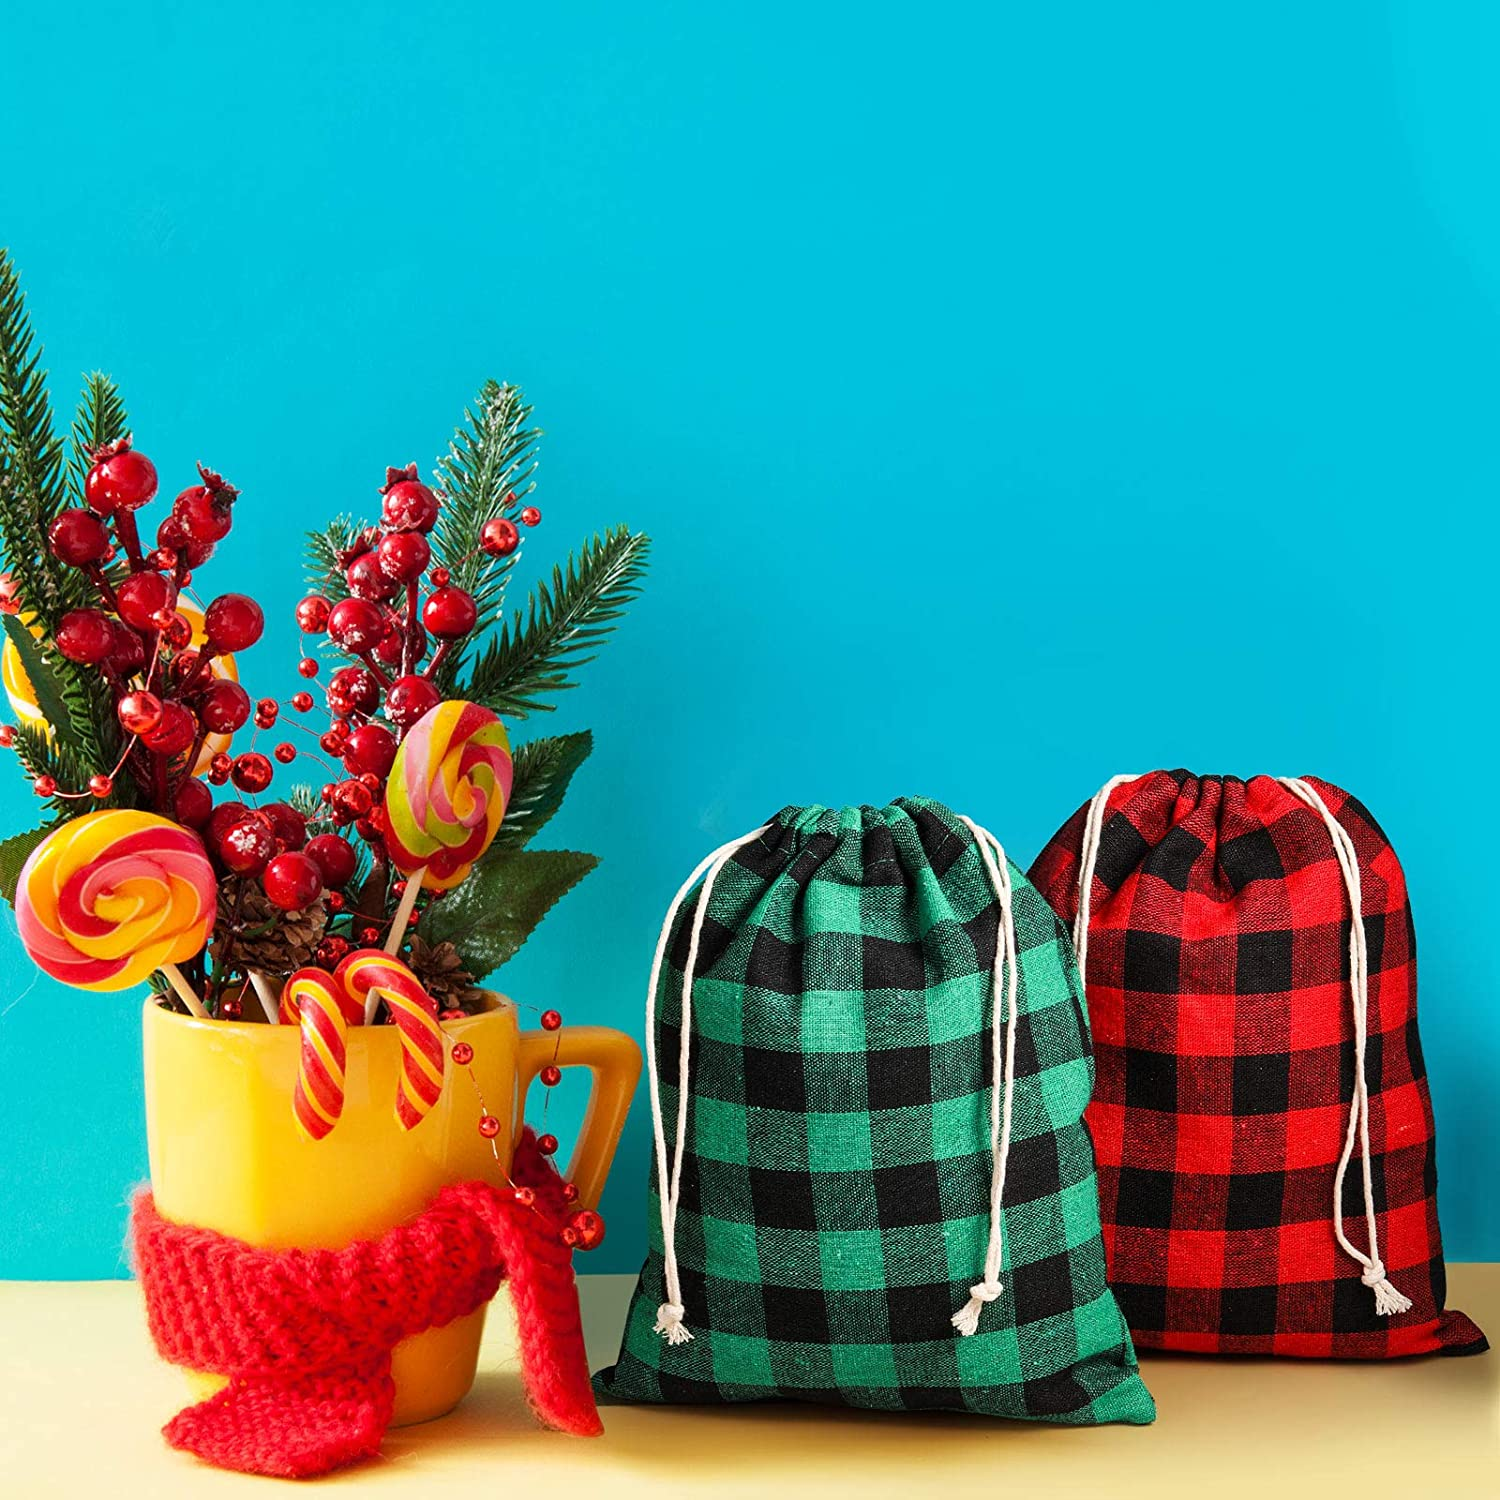 3.9 x 5.5 Inches Toys and Holiday Party Favors Supply 24 Pieces Christmas Plaid Drawstring Bag Cotton Buffalo Checked Xmas Wrapping Bags Christmas Sack Storage Bag for Xmas Present